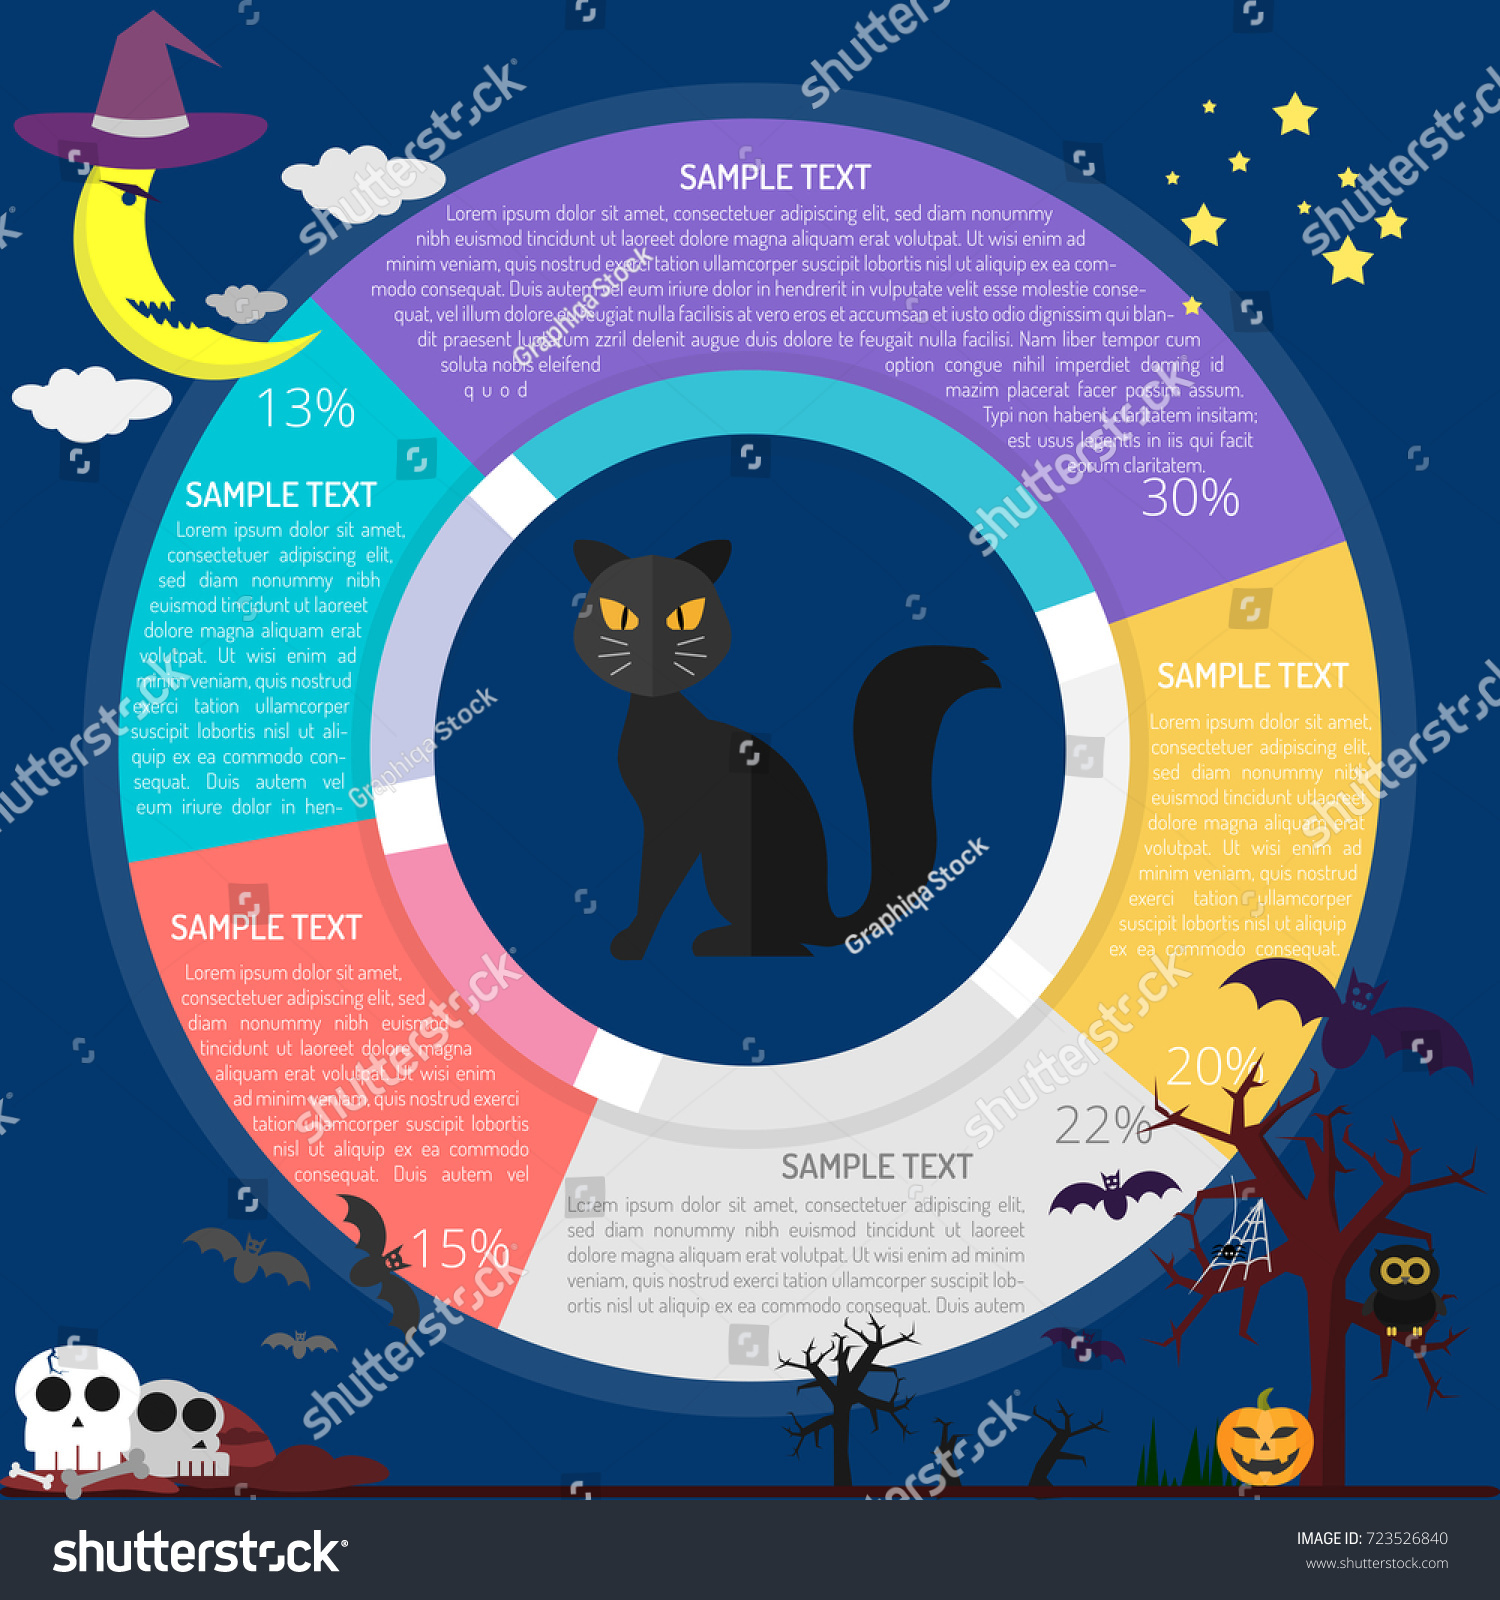 hight resolution of black cat diagram infographic